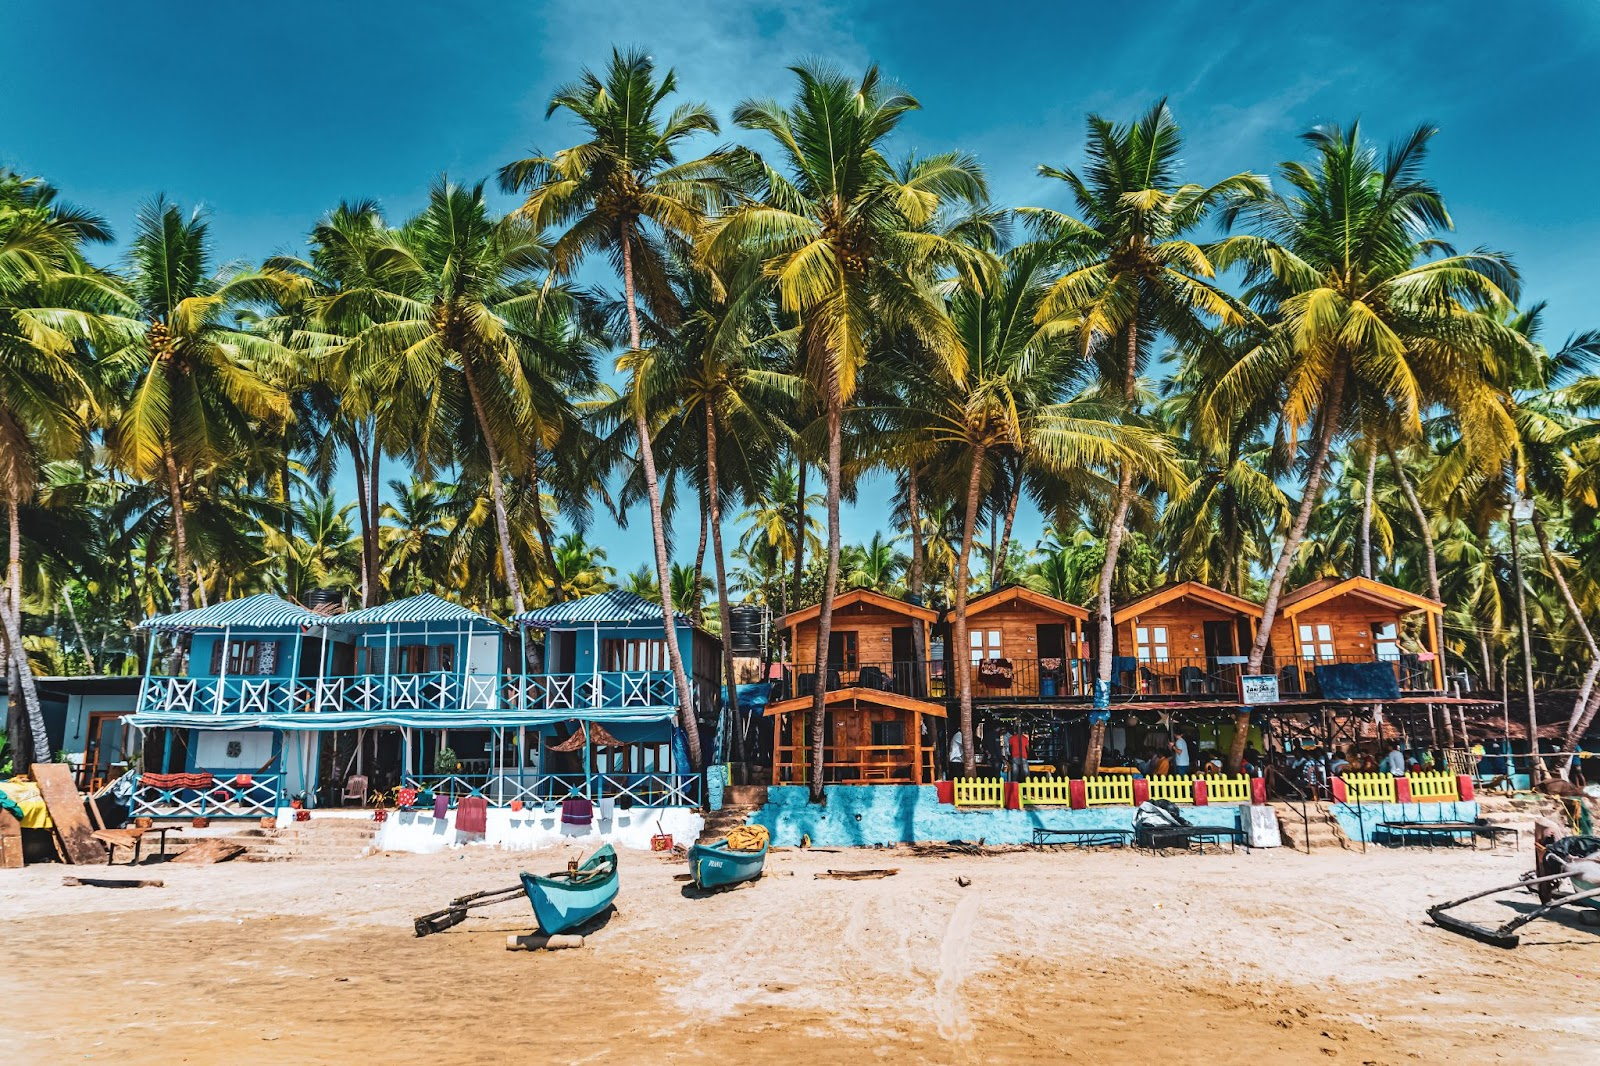 Palolem Beach, one of the top places to visit in South Goa.